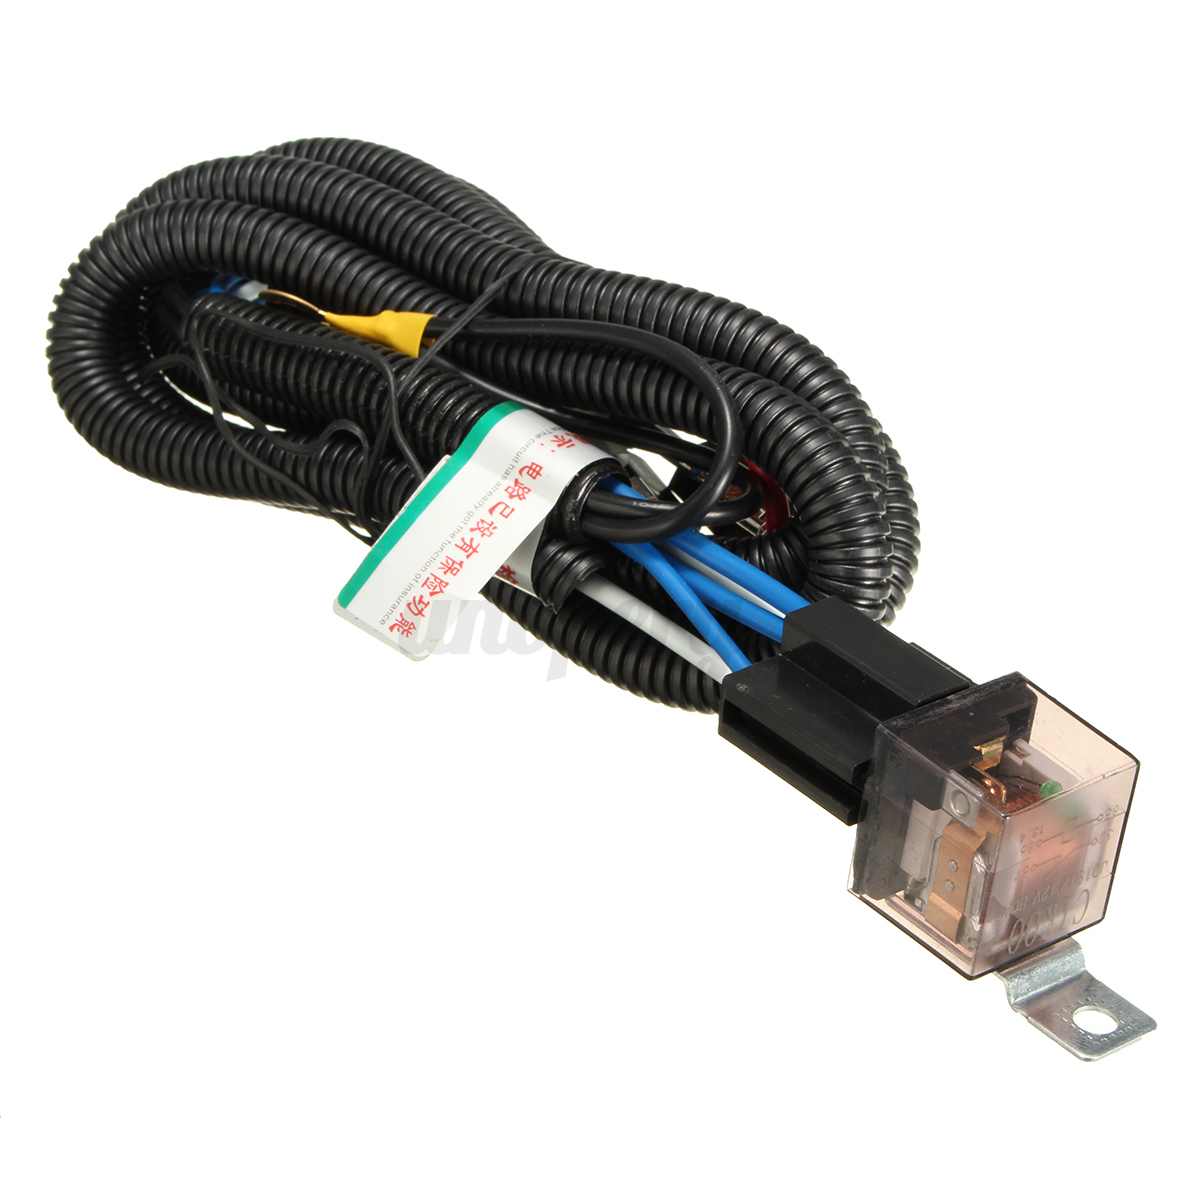 Horn Wiring Kit Solution Of Your Diagram Guide Hella Relay Harness 12v Electric For Grille On Youtbe